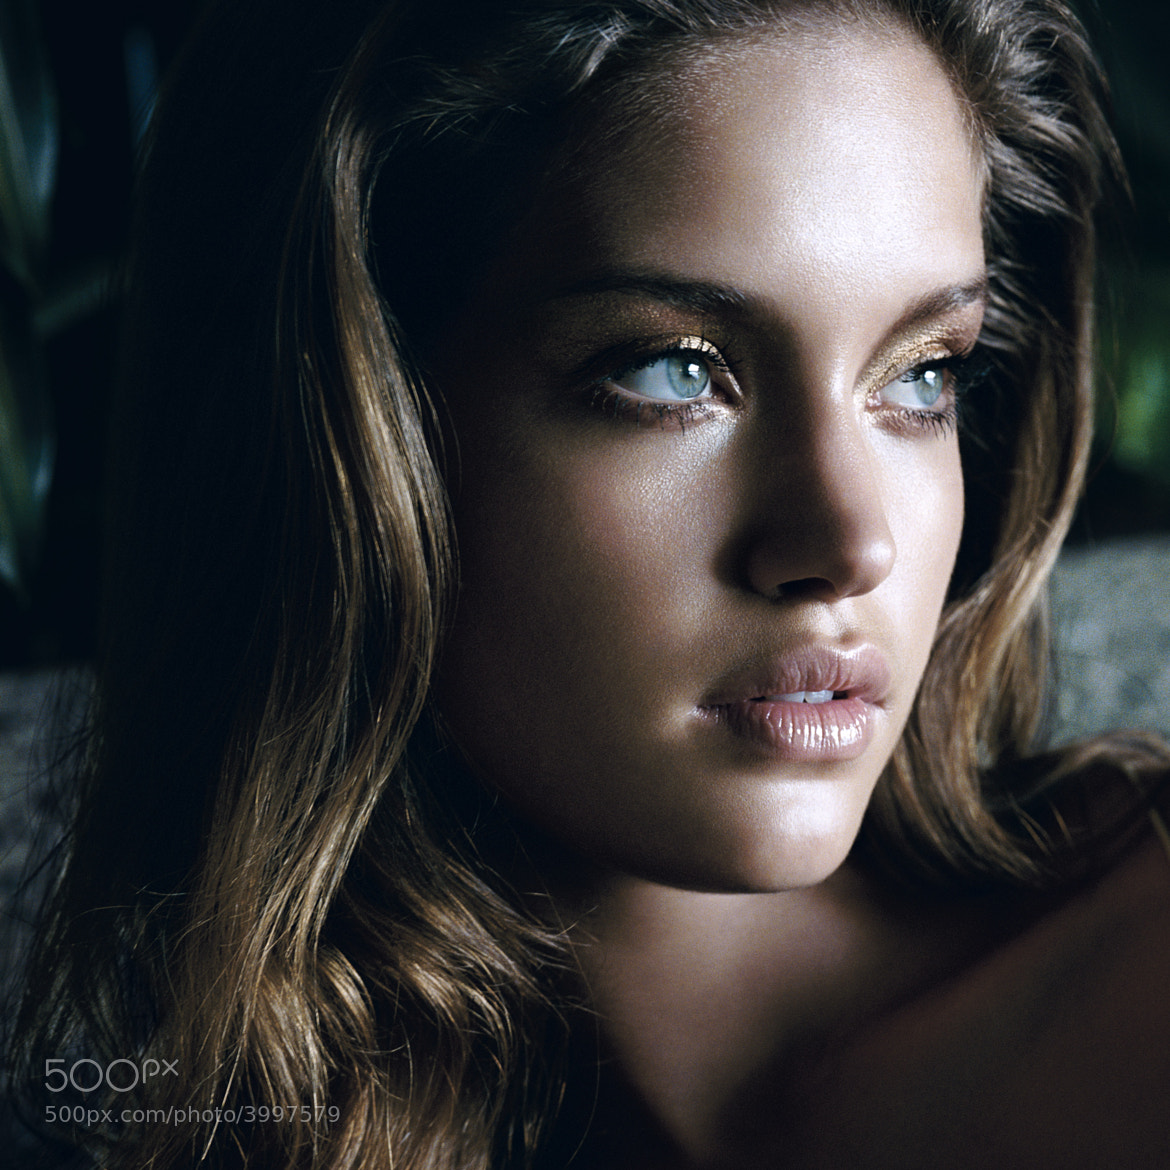 Photograph Julie Ordon by Patric Shaw on 500px